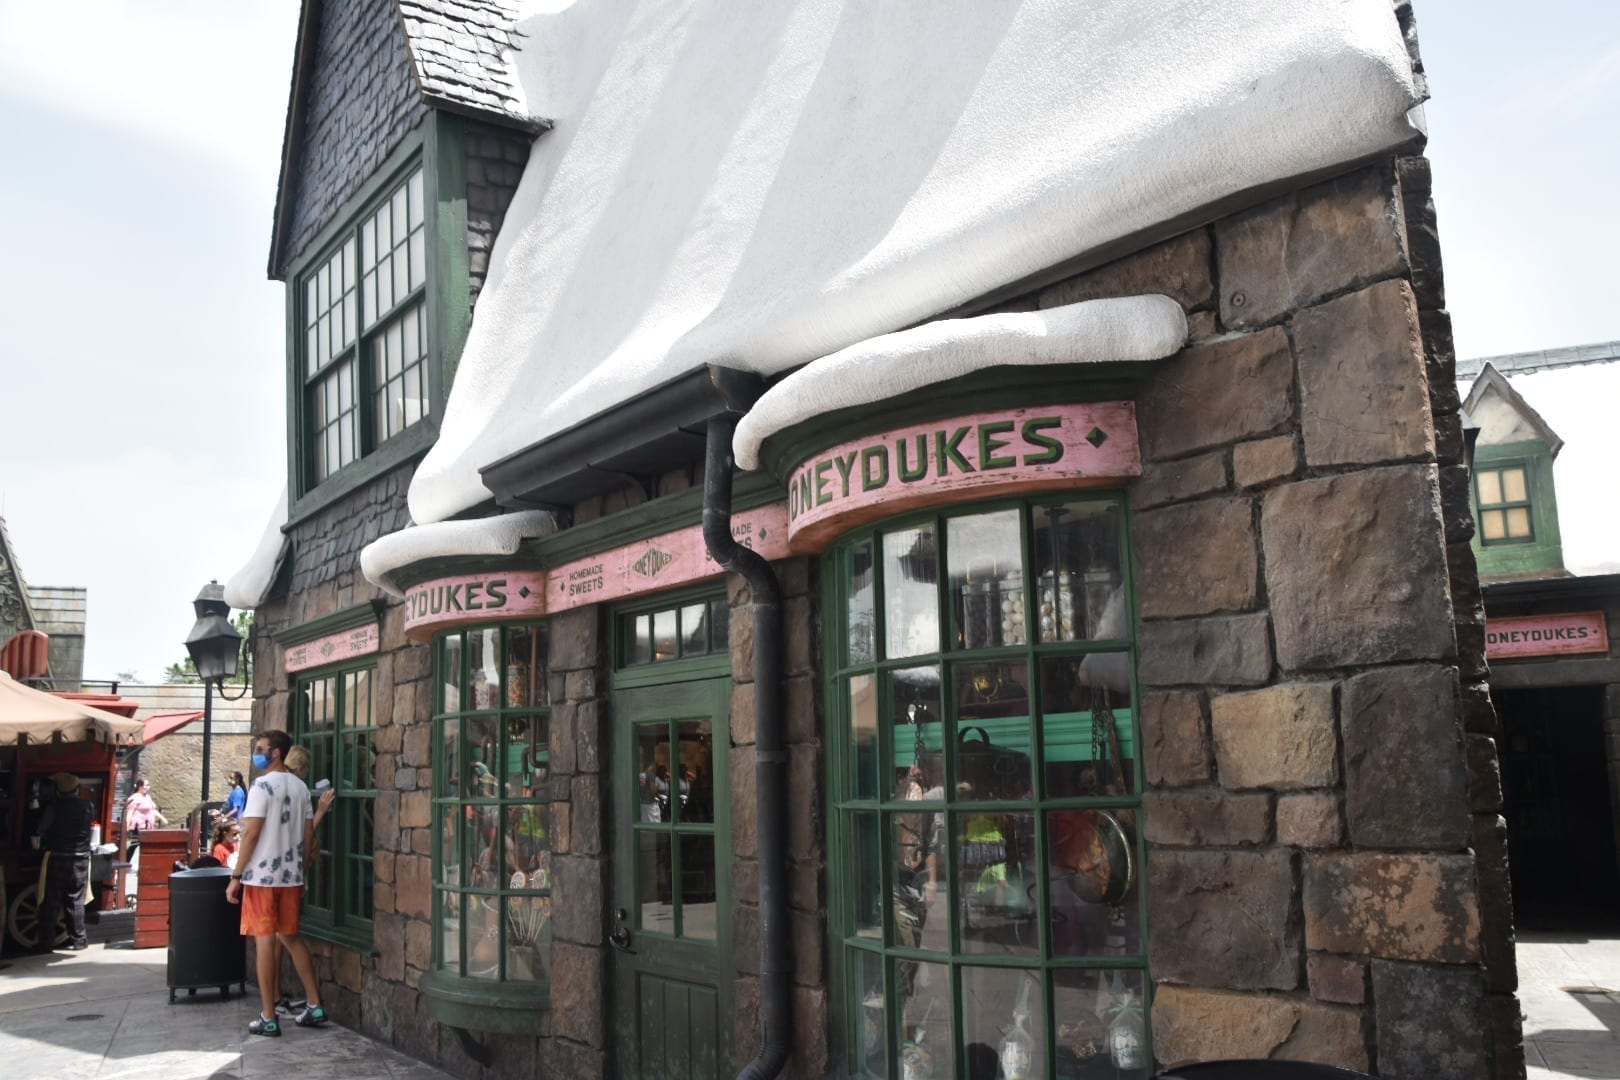 Harry Potter Souvenir Honey Dukes